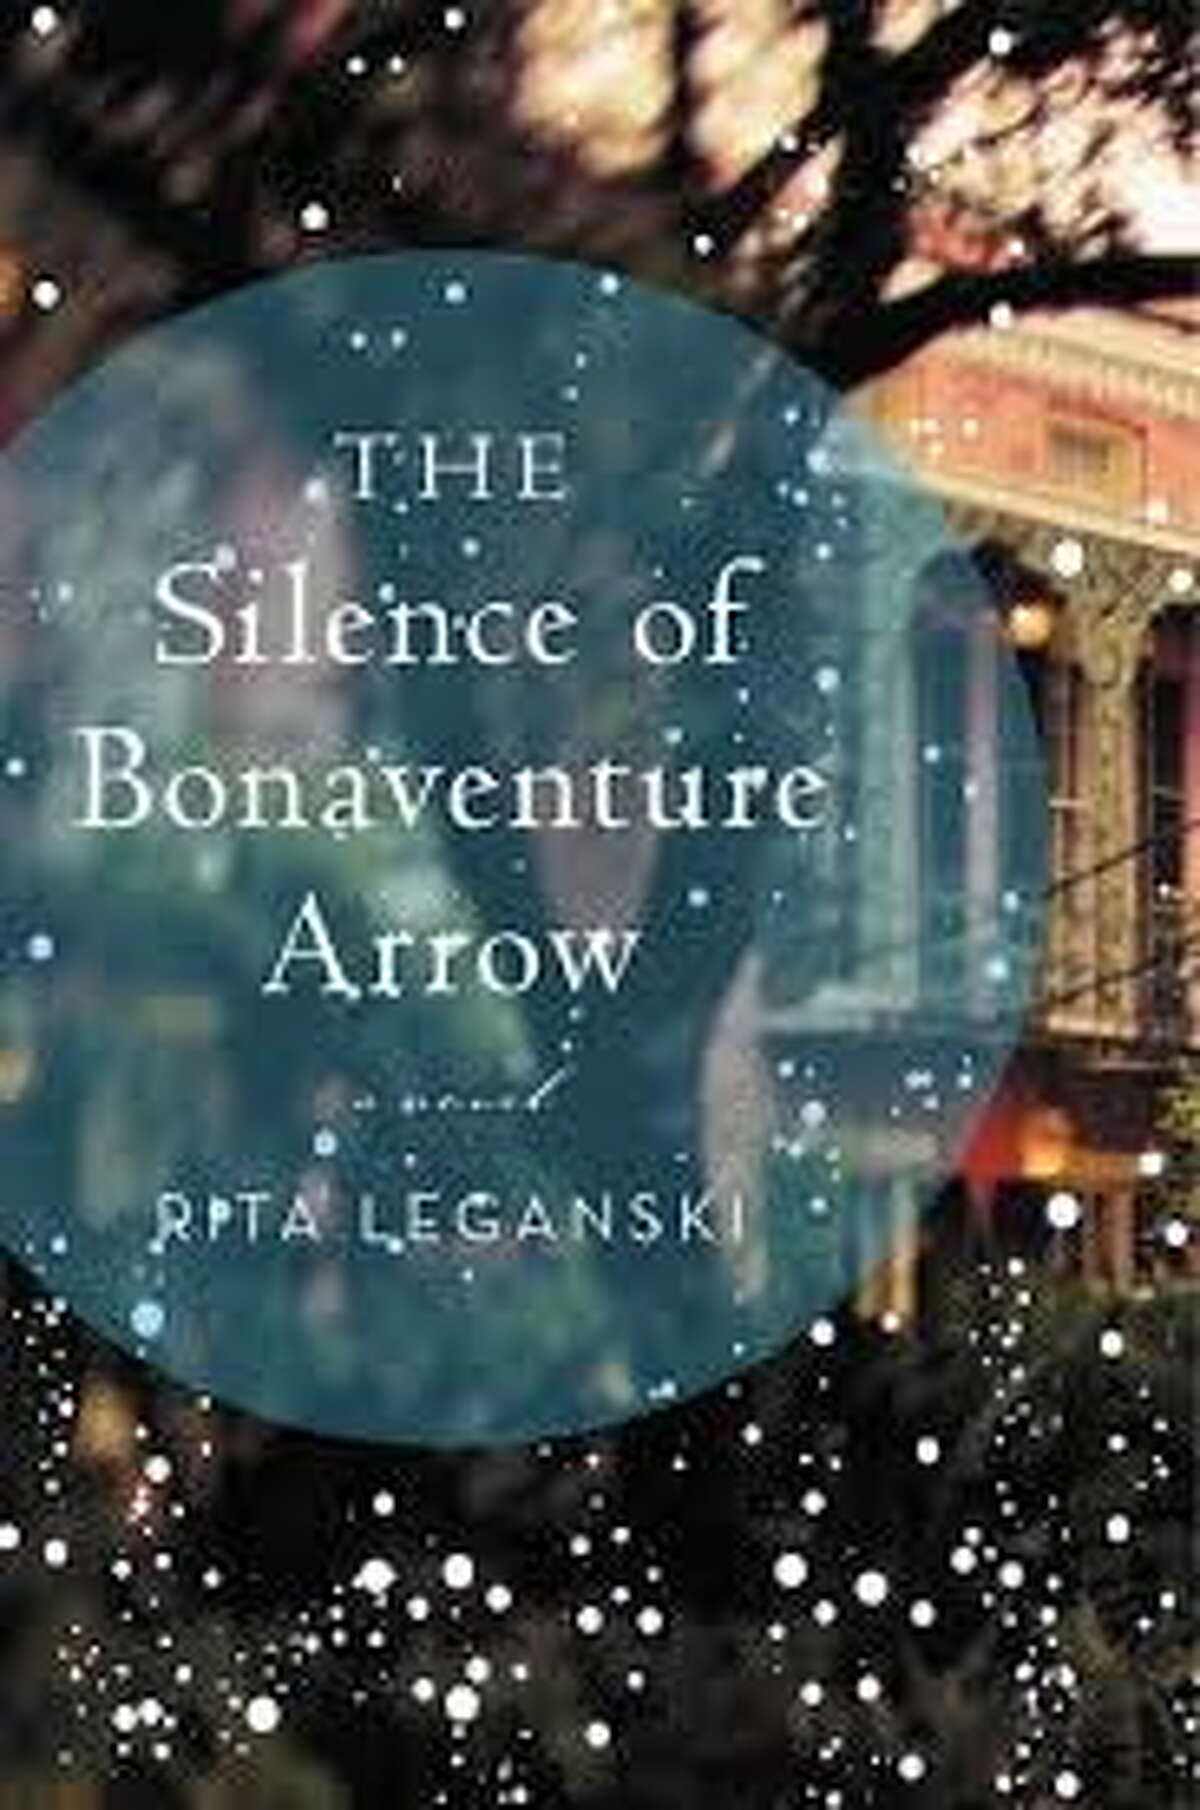 """Rita Leganski's """"The Silence of Bonaventure Arrow"""" will be this year's One Book, One Middletown."""